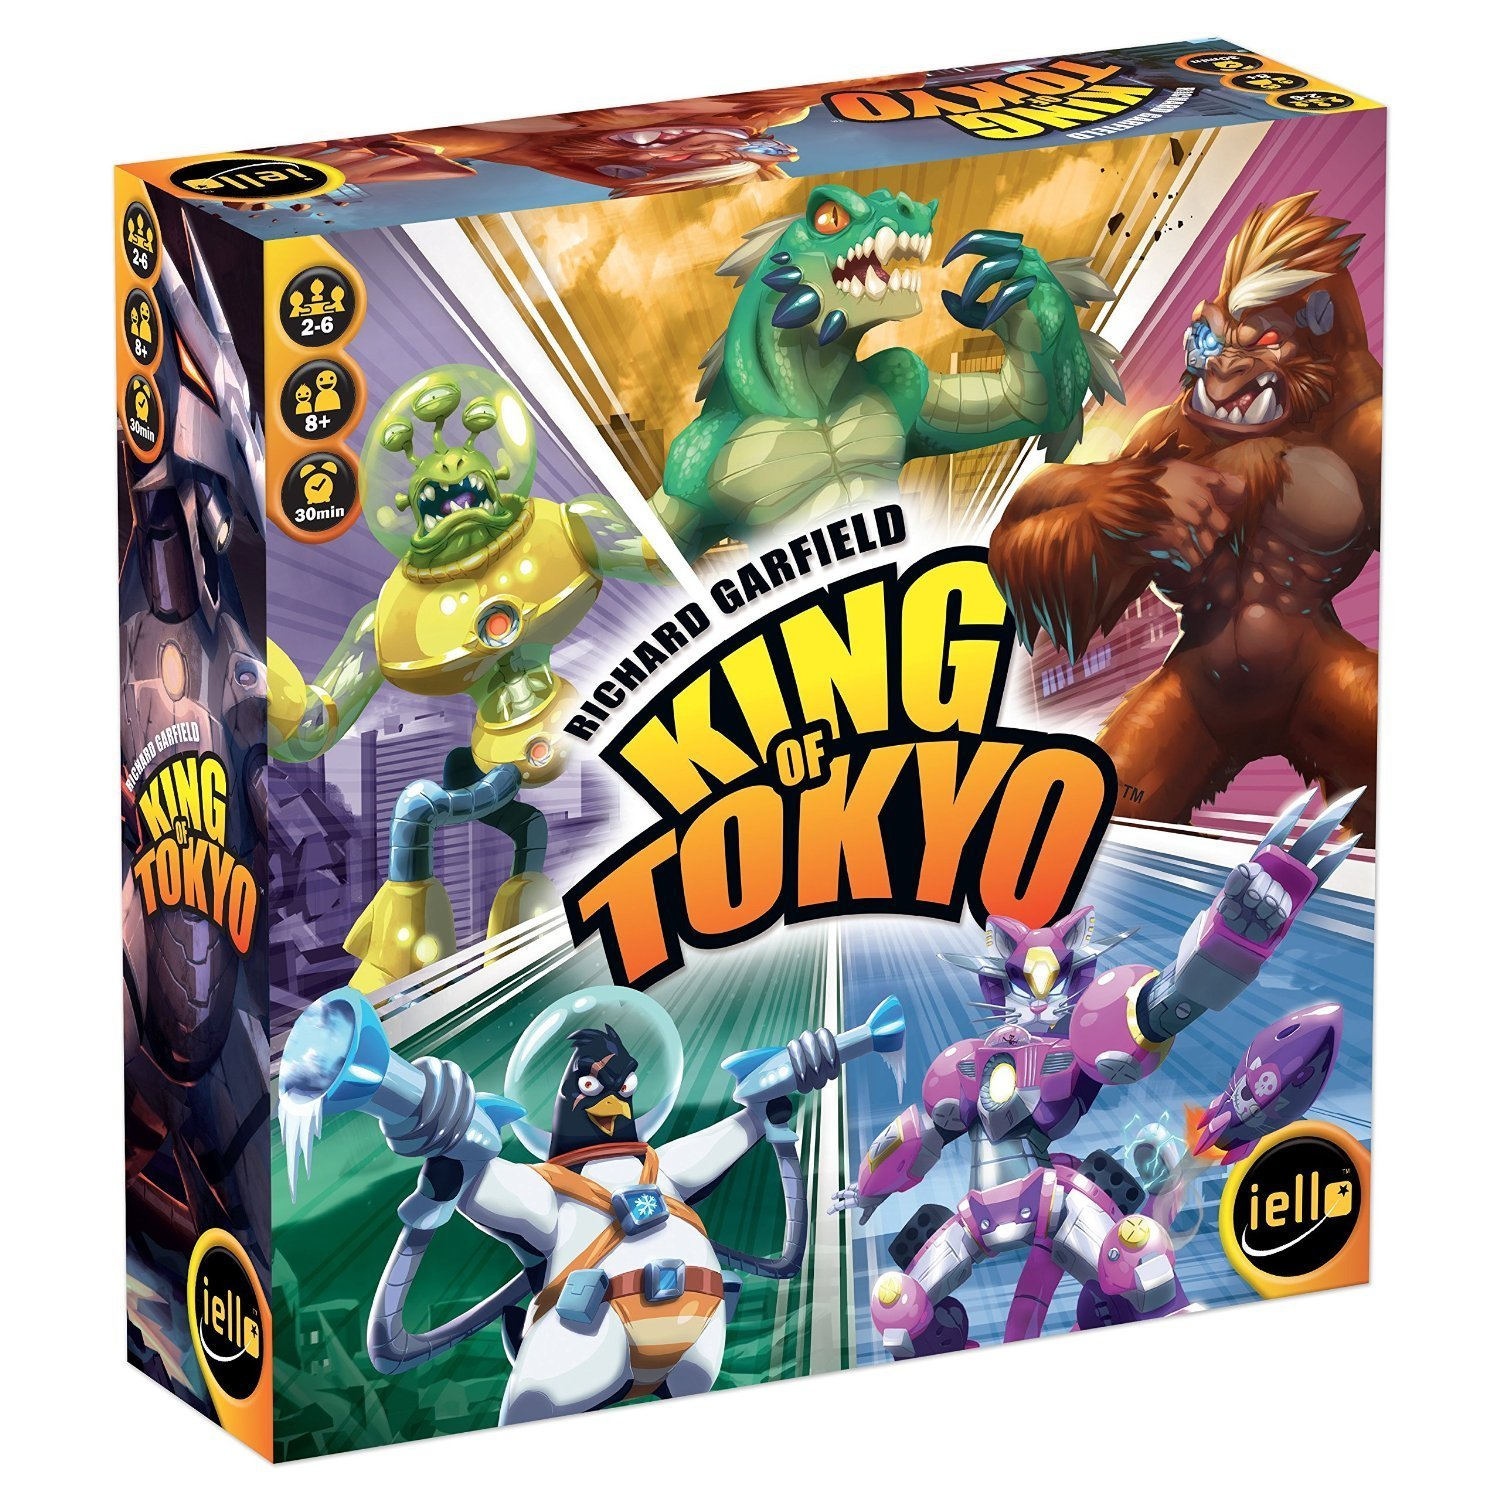 680299aee18 King of Tokyo  New Edition Board Game  Amazon.com.au  Toys   Games